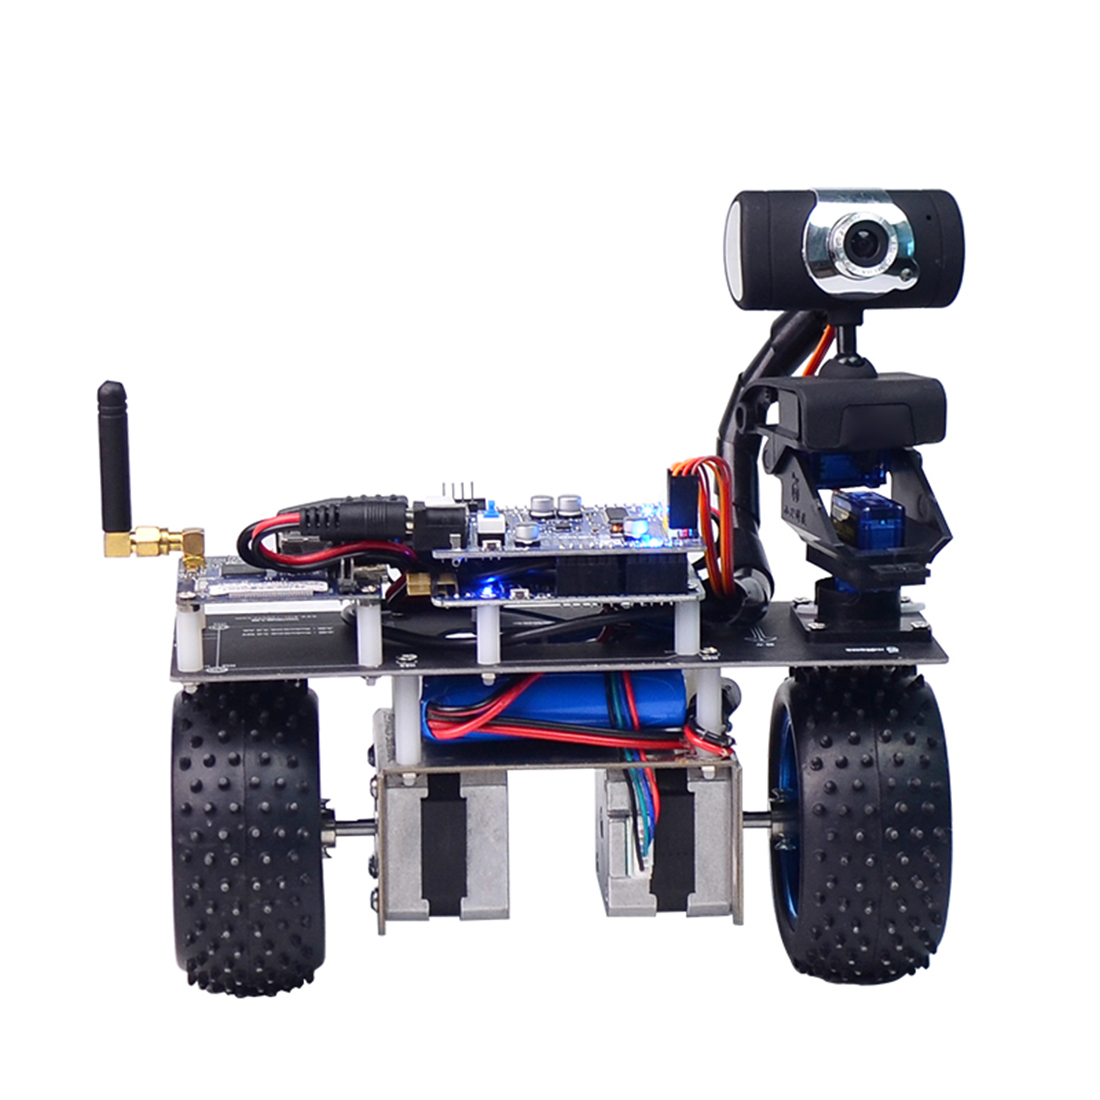 Programmable Intelligent Balance Car WiFi Video Robot Car Support APP PC Remote Control For STM32